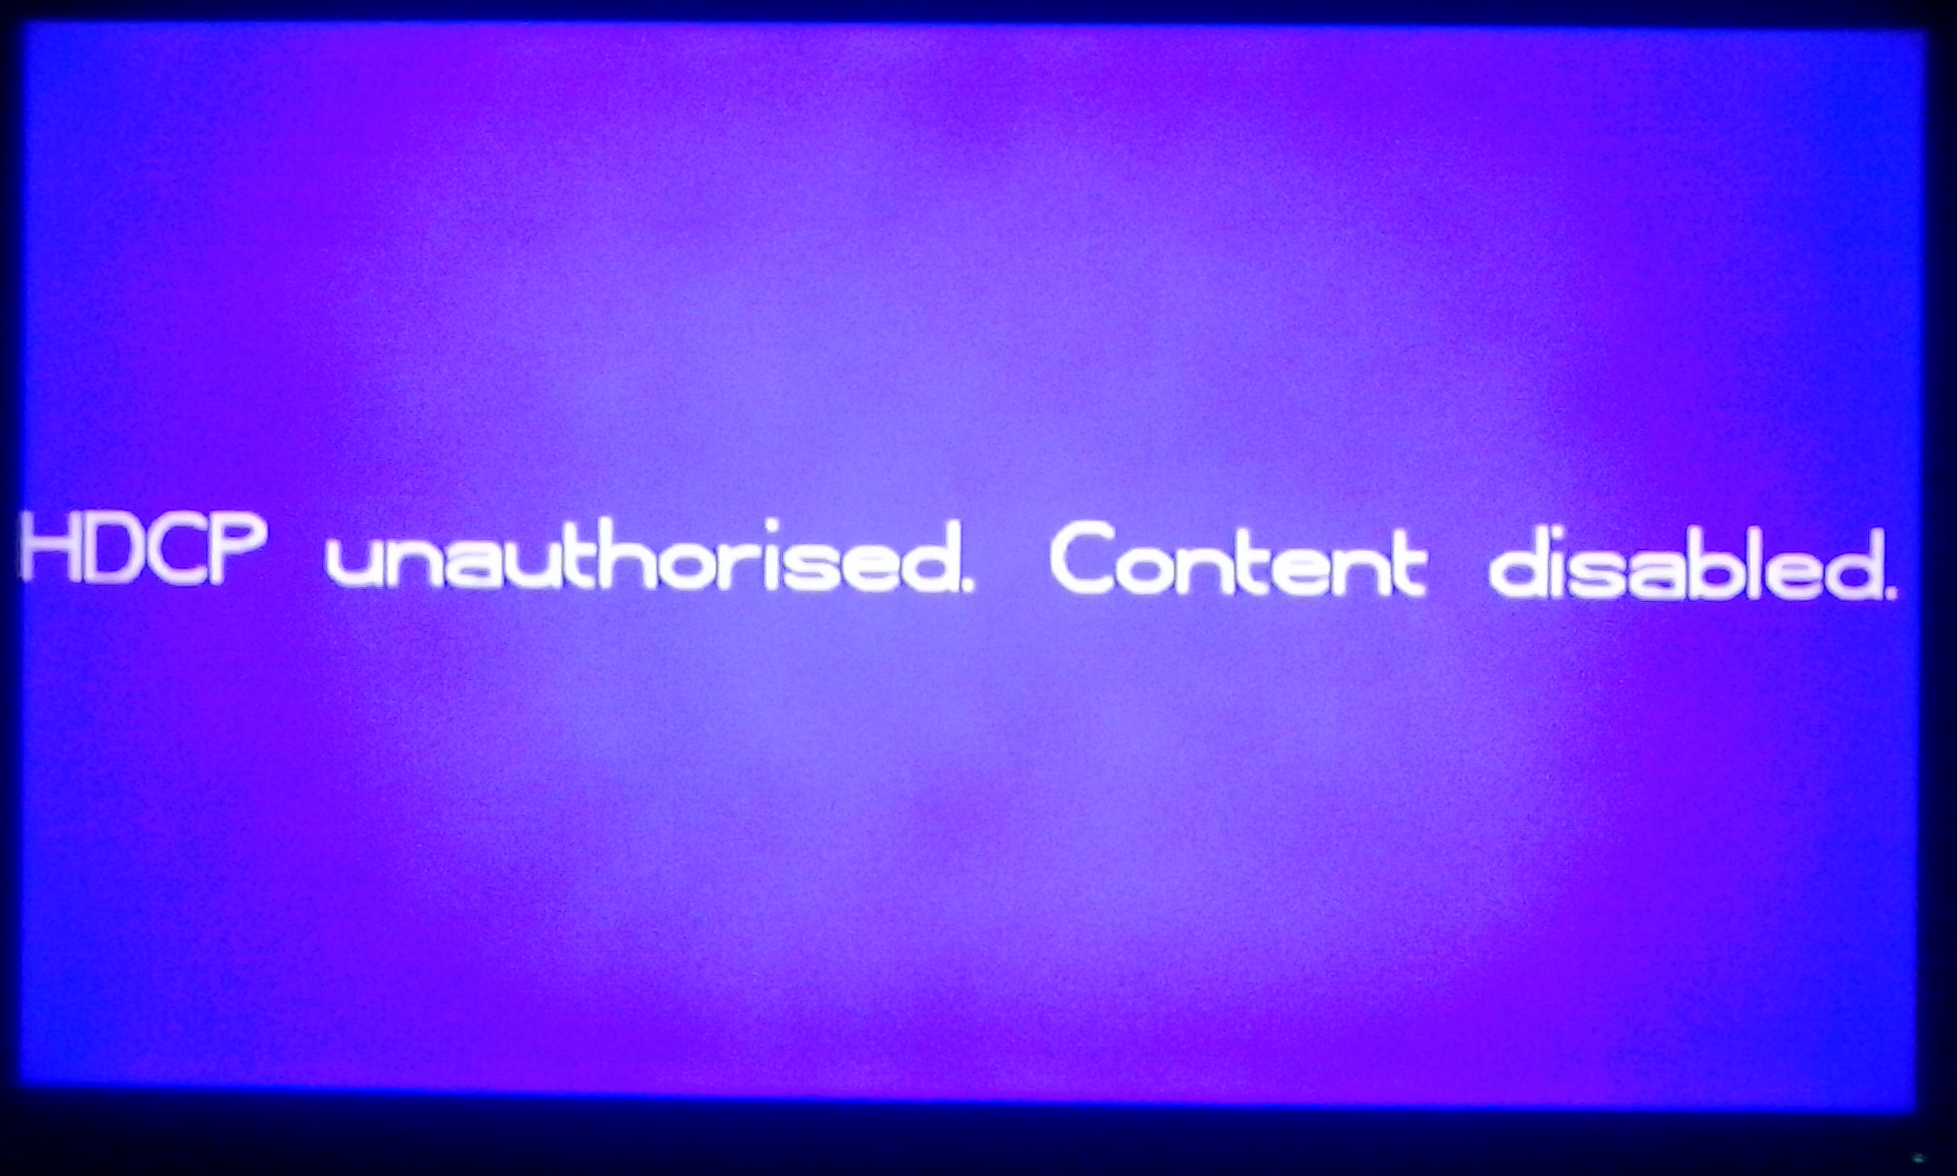 HDCP unauthorised. Content disabled fix roku